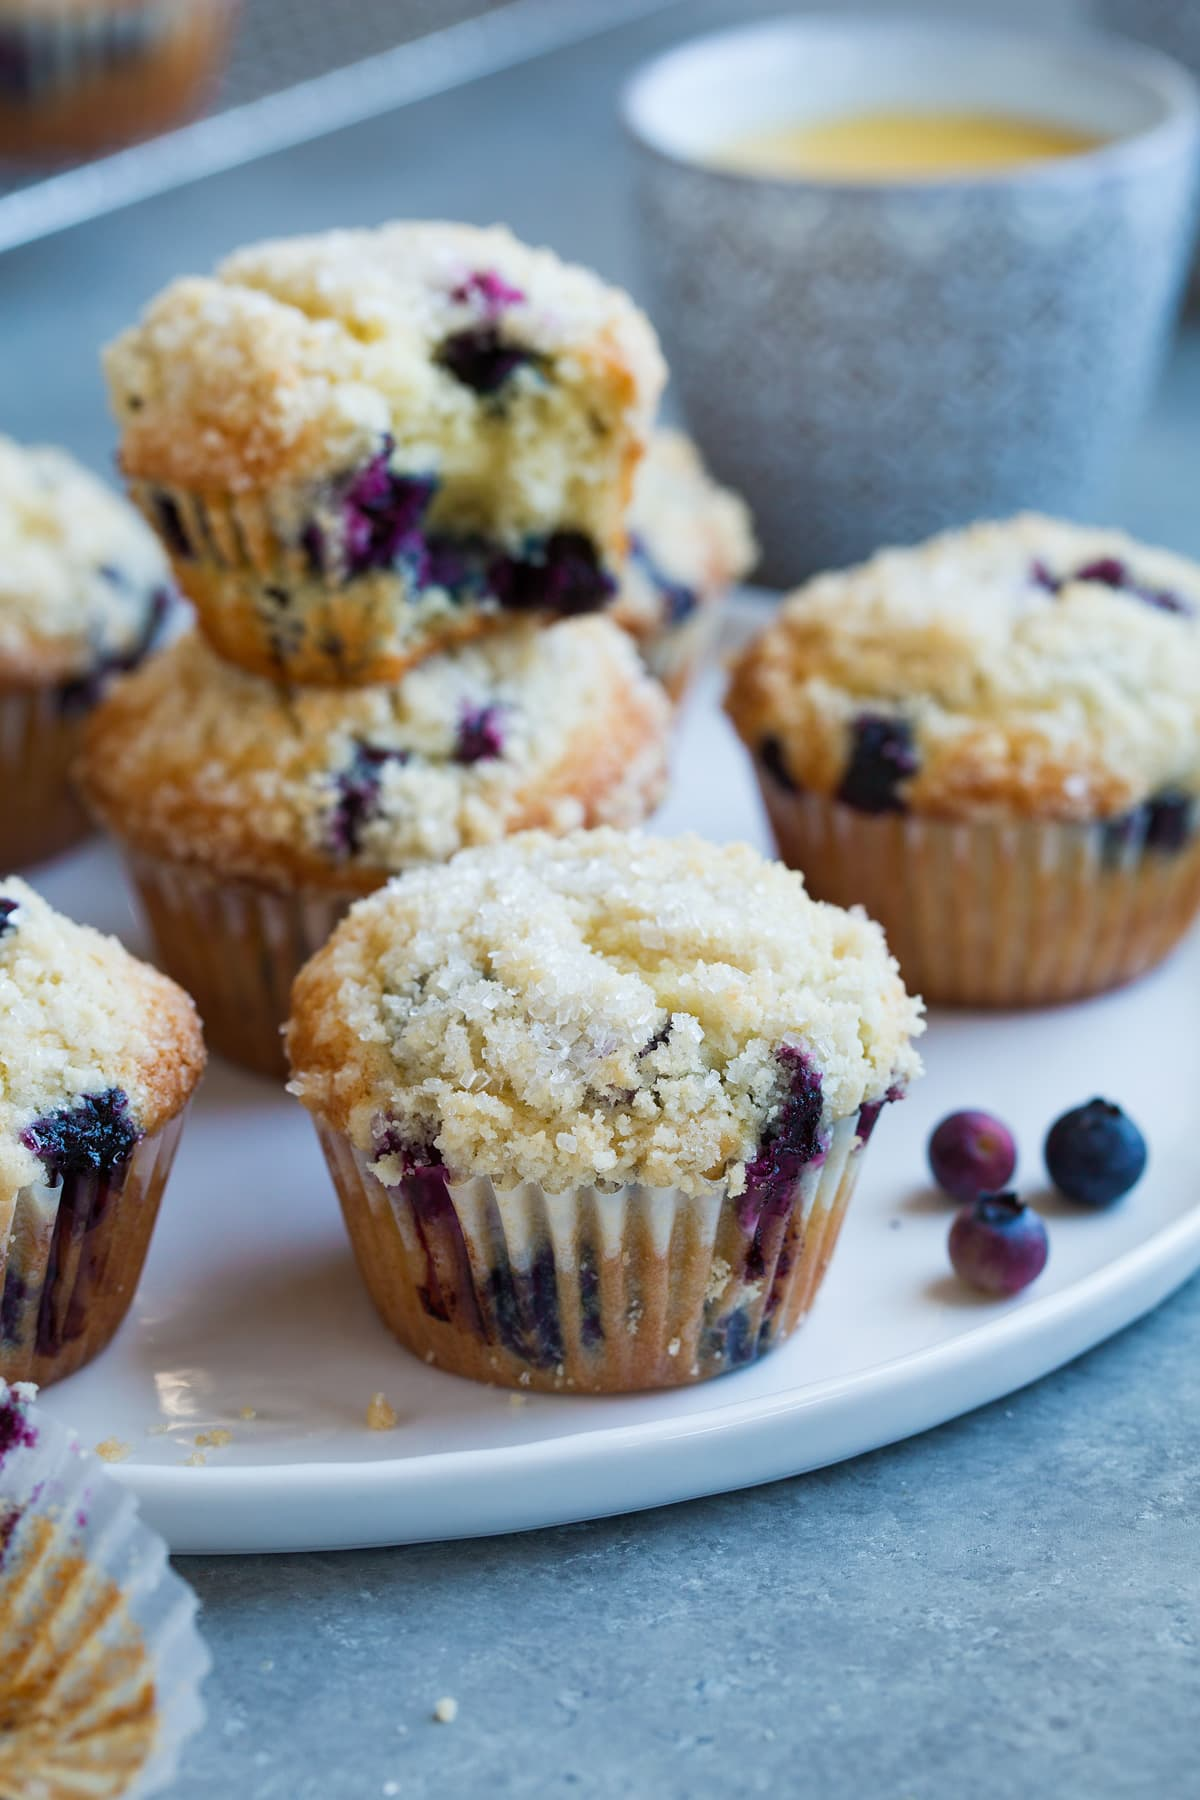 Blueberry muffins showing crumb topping.